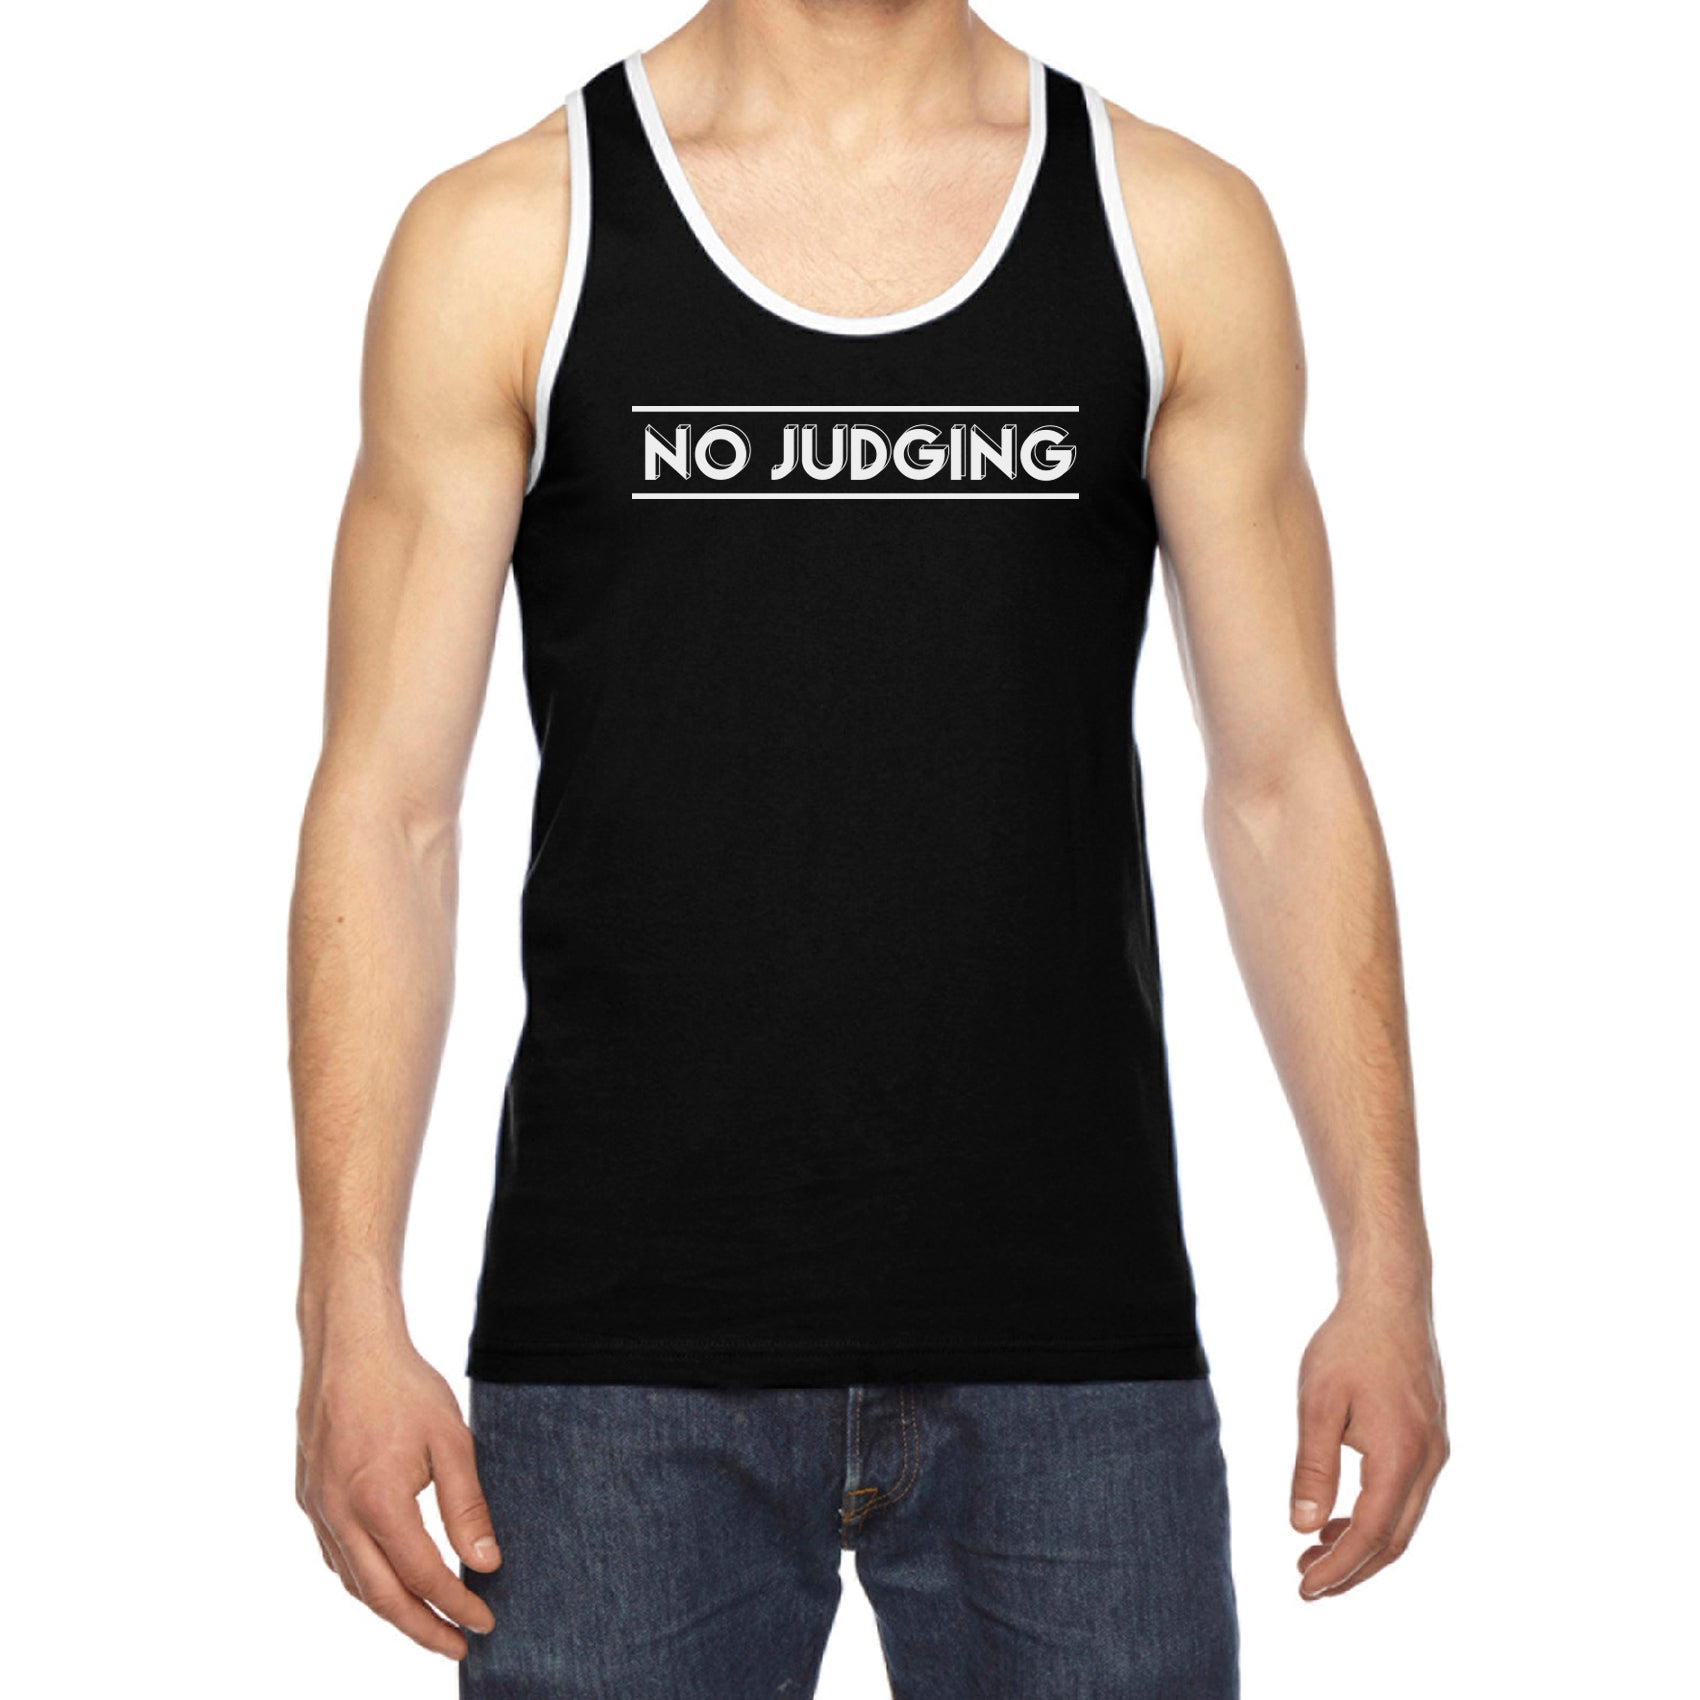 No Judging Tank Top